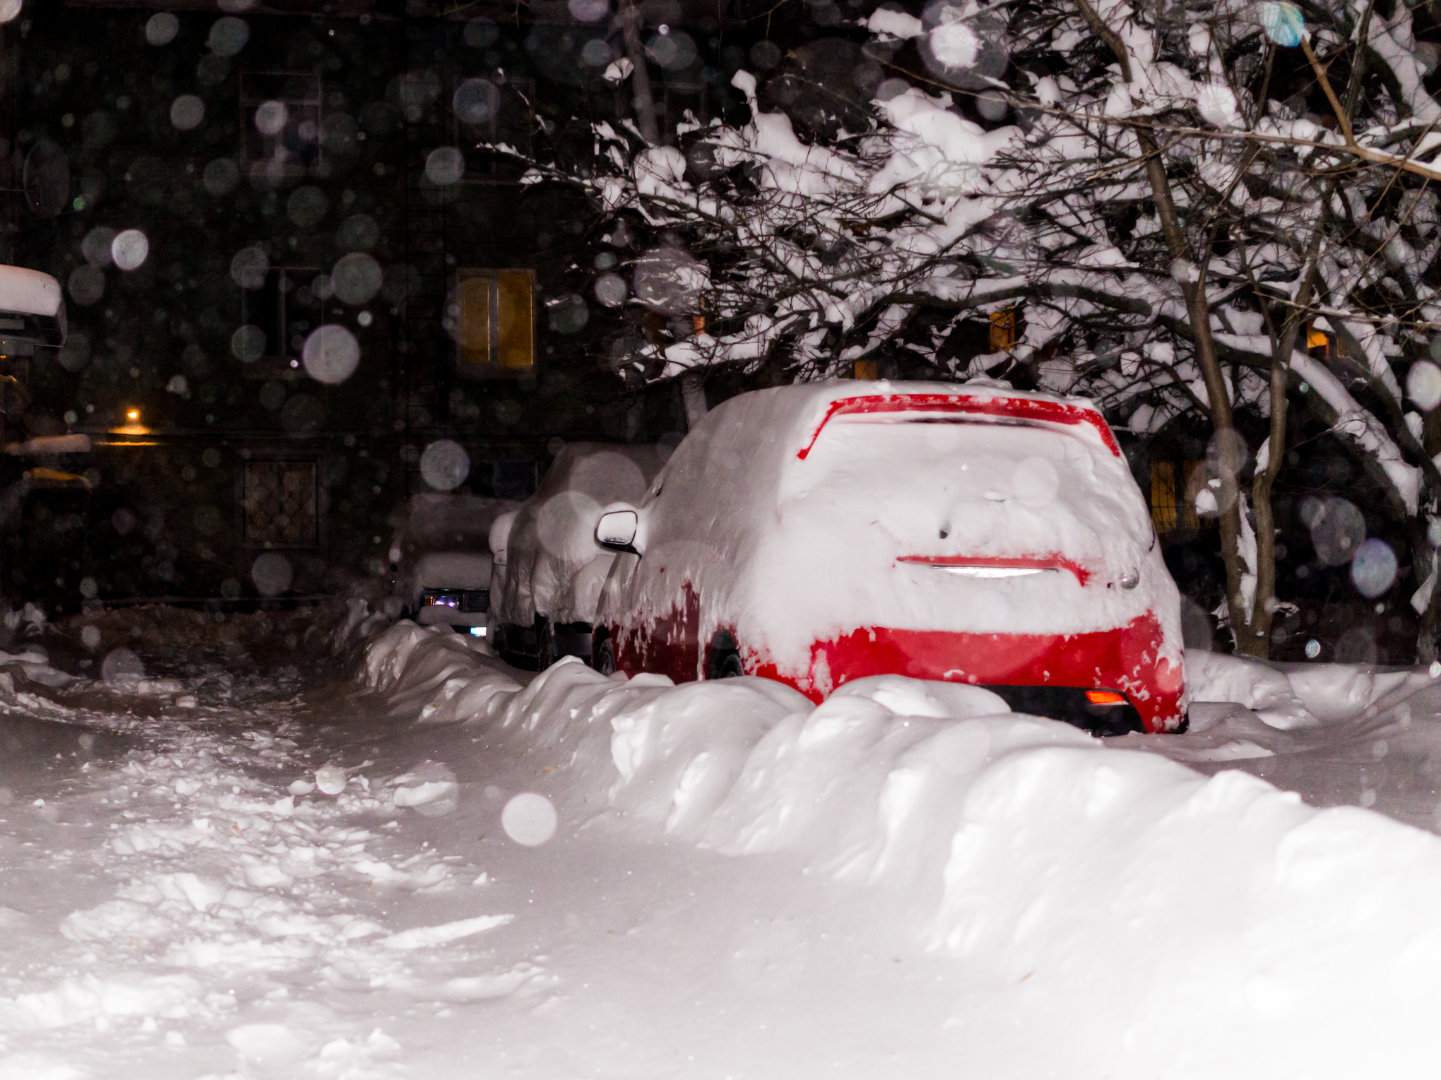 6 Steps to Getting Your Car Unstuck in the Winter